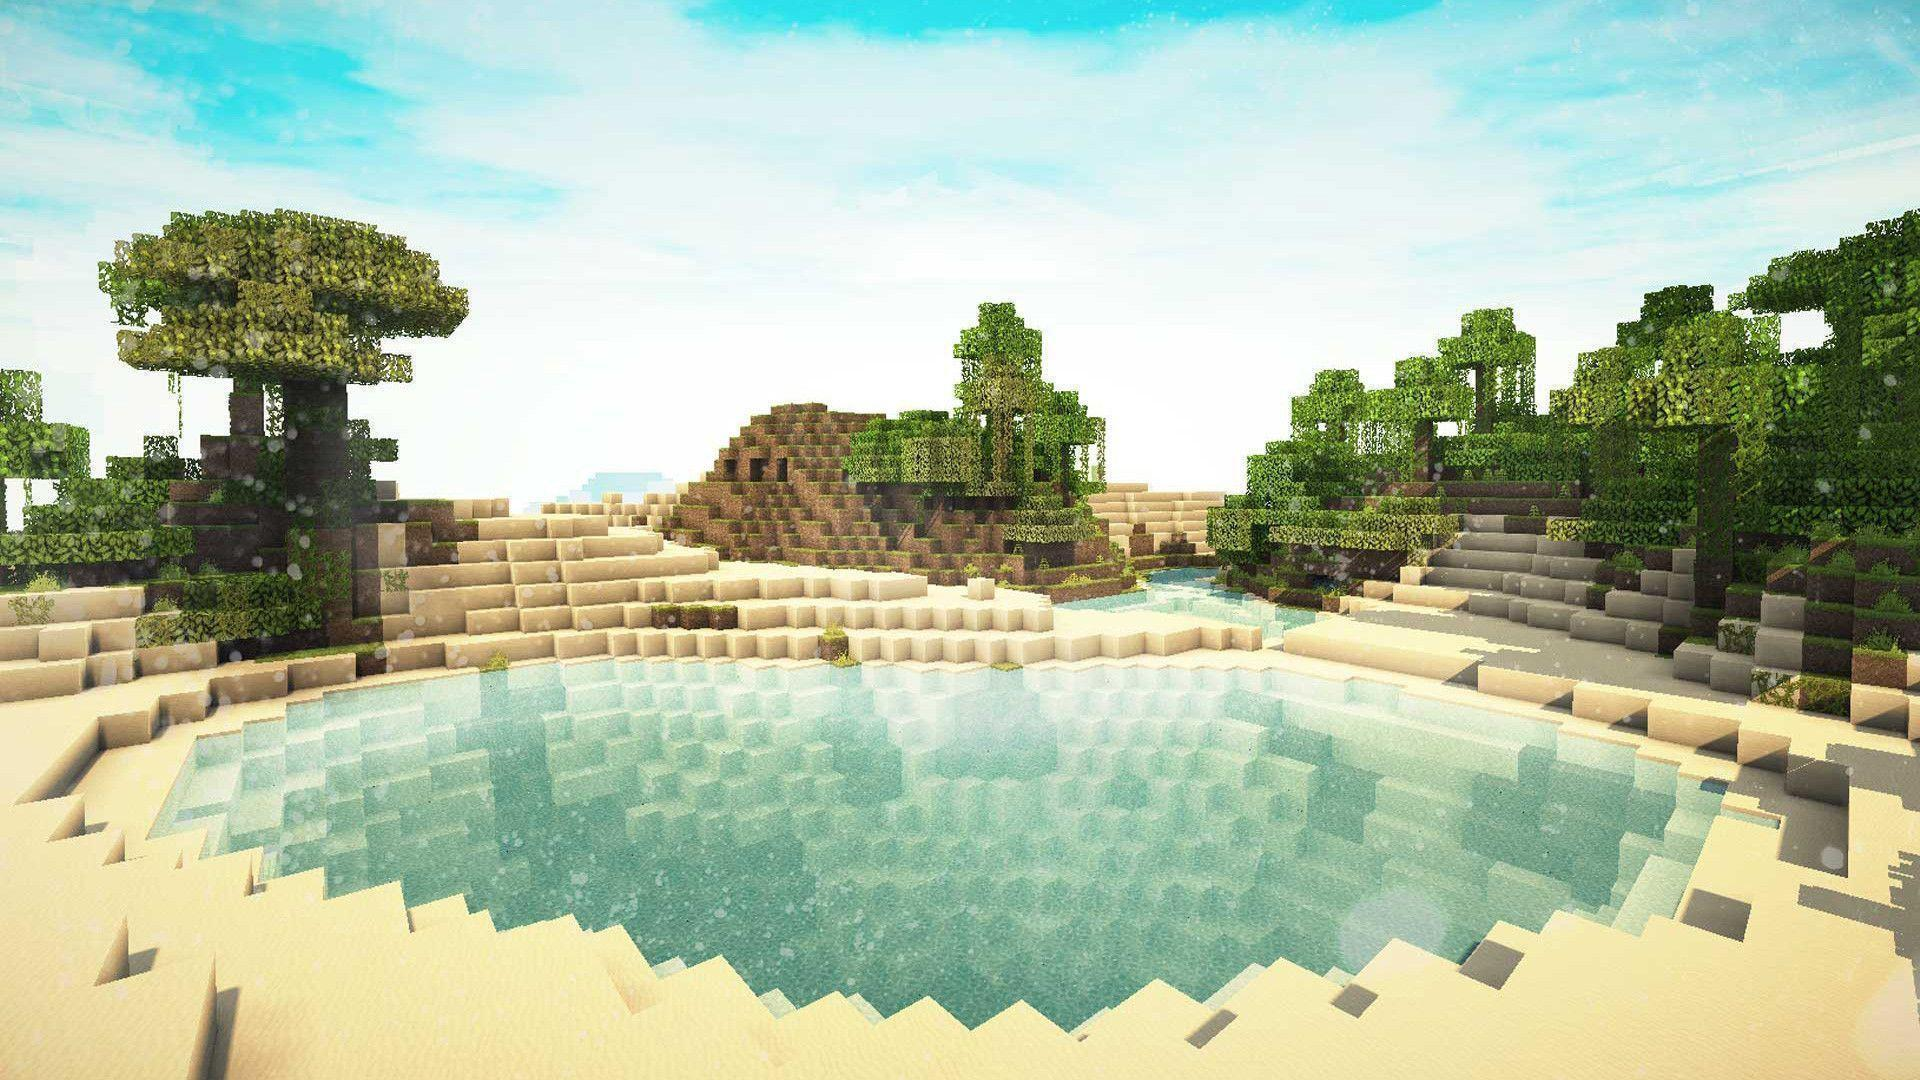 Top Wallpaper Minecraft 1080p - VLxl75R  Best Photo Reference_906774.jpg